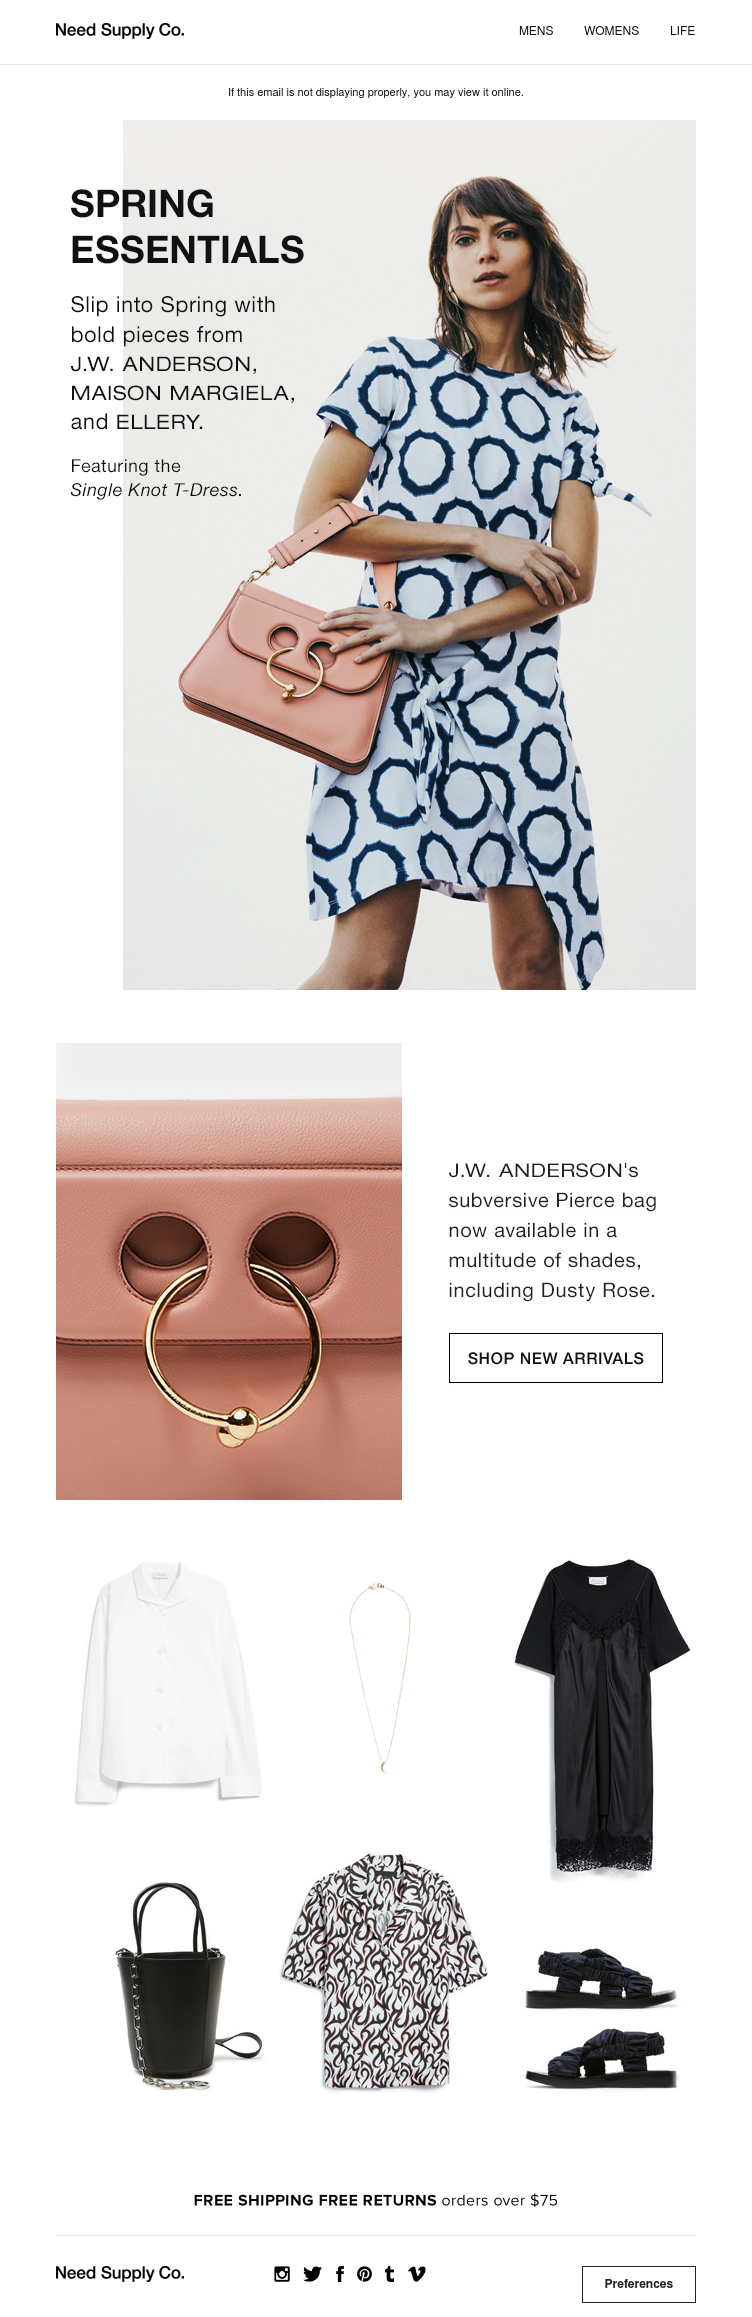 soundest-ecommerce-newsletter-examples4